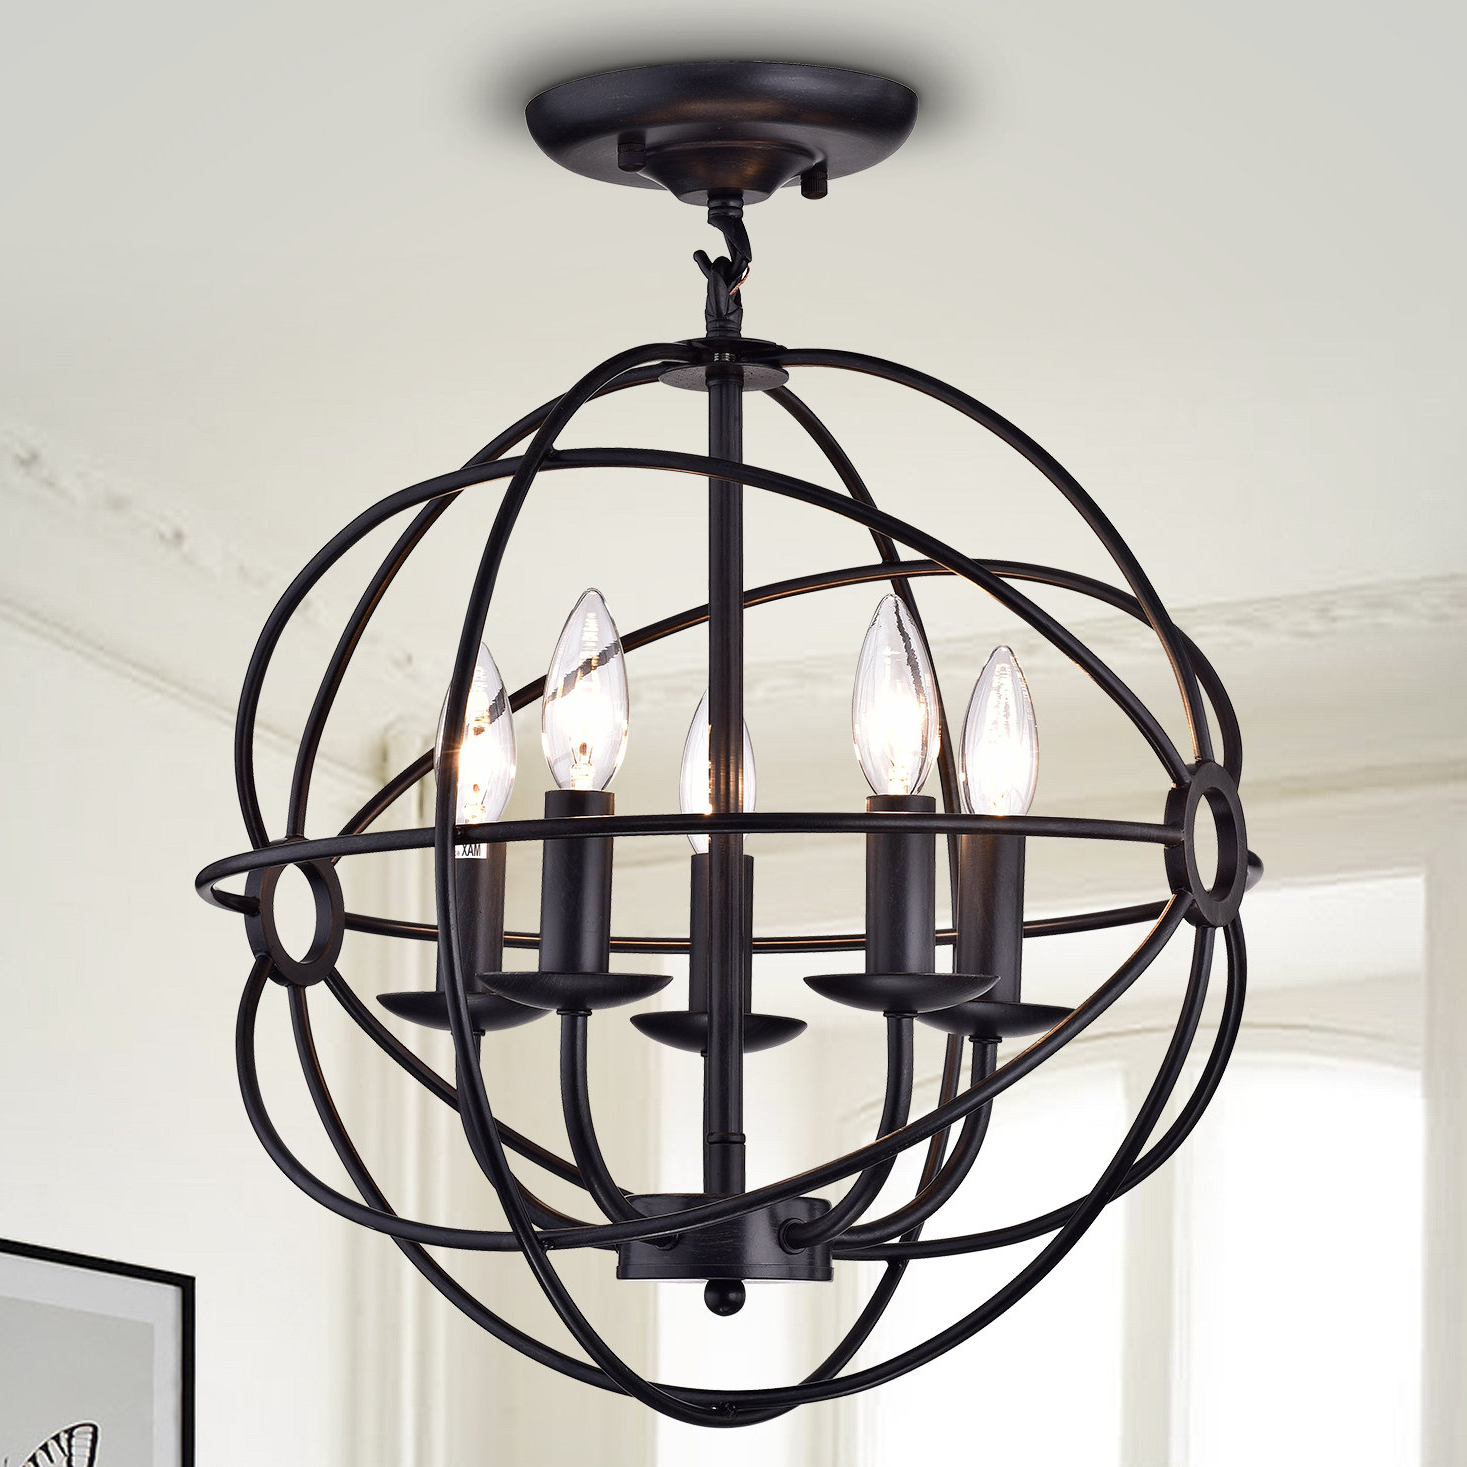 5-Light Globe Chandelier for Well-known Hendry 4-Light Globe Chandeliers